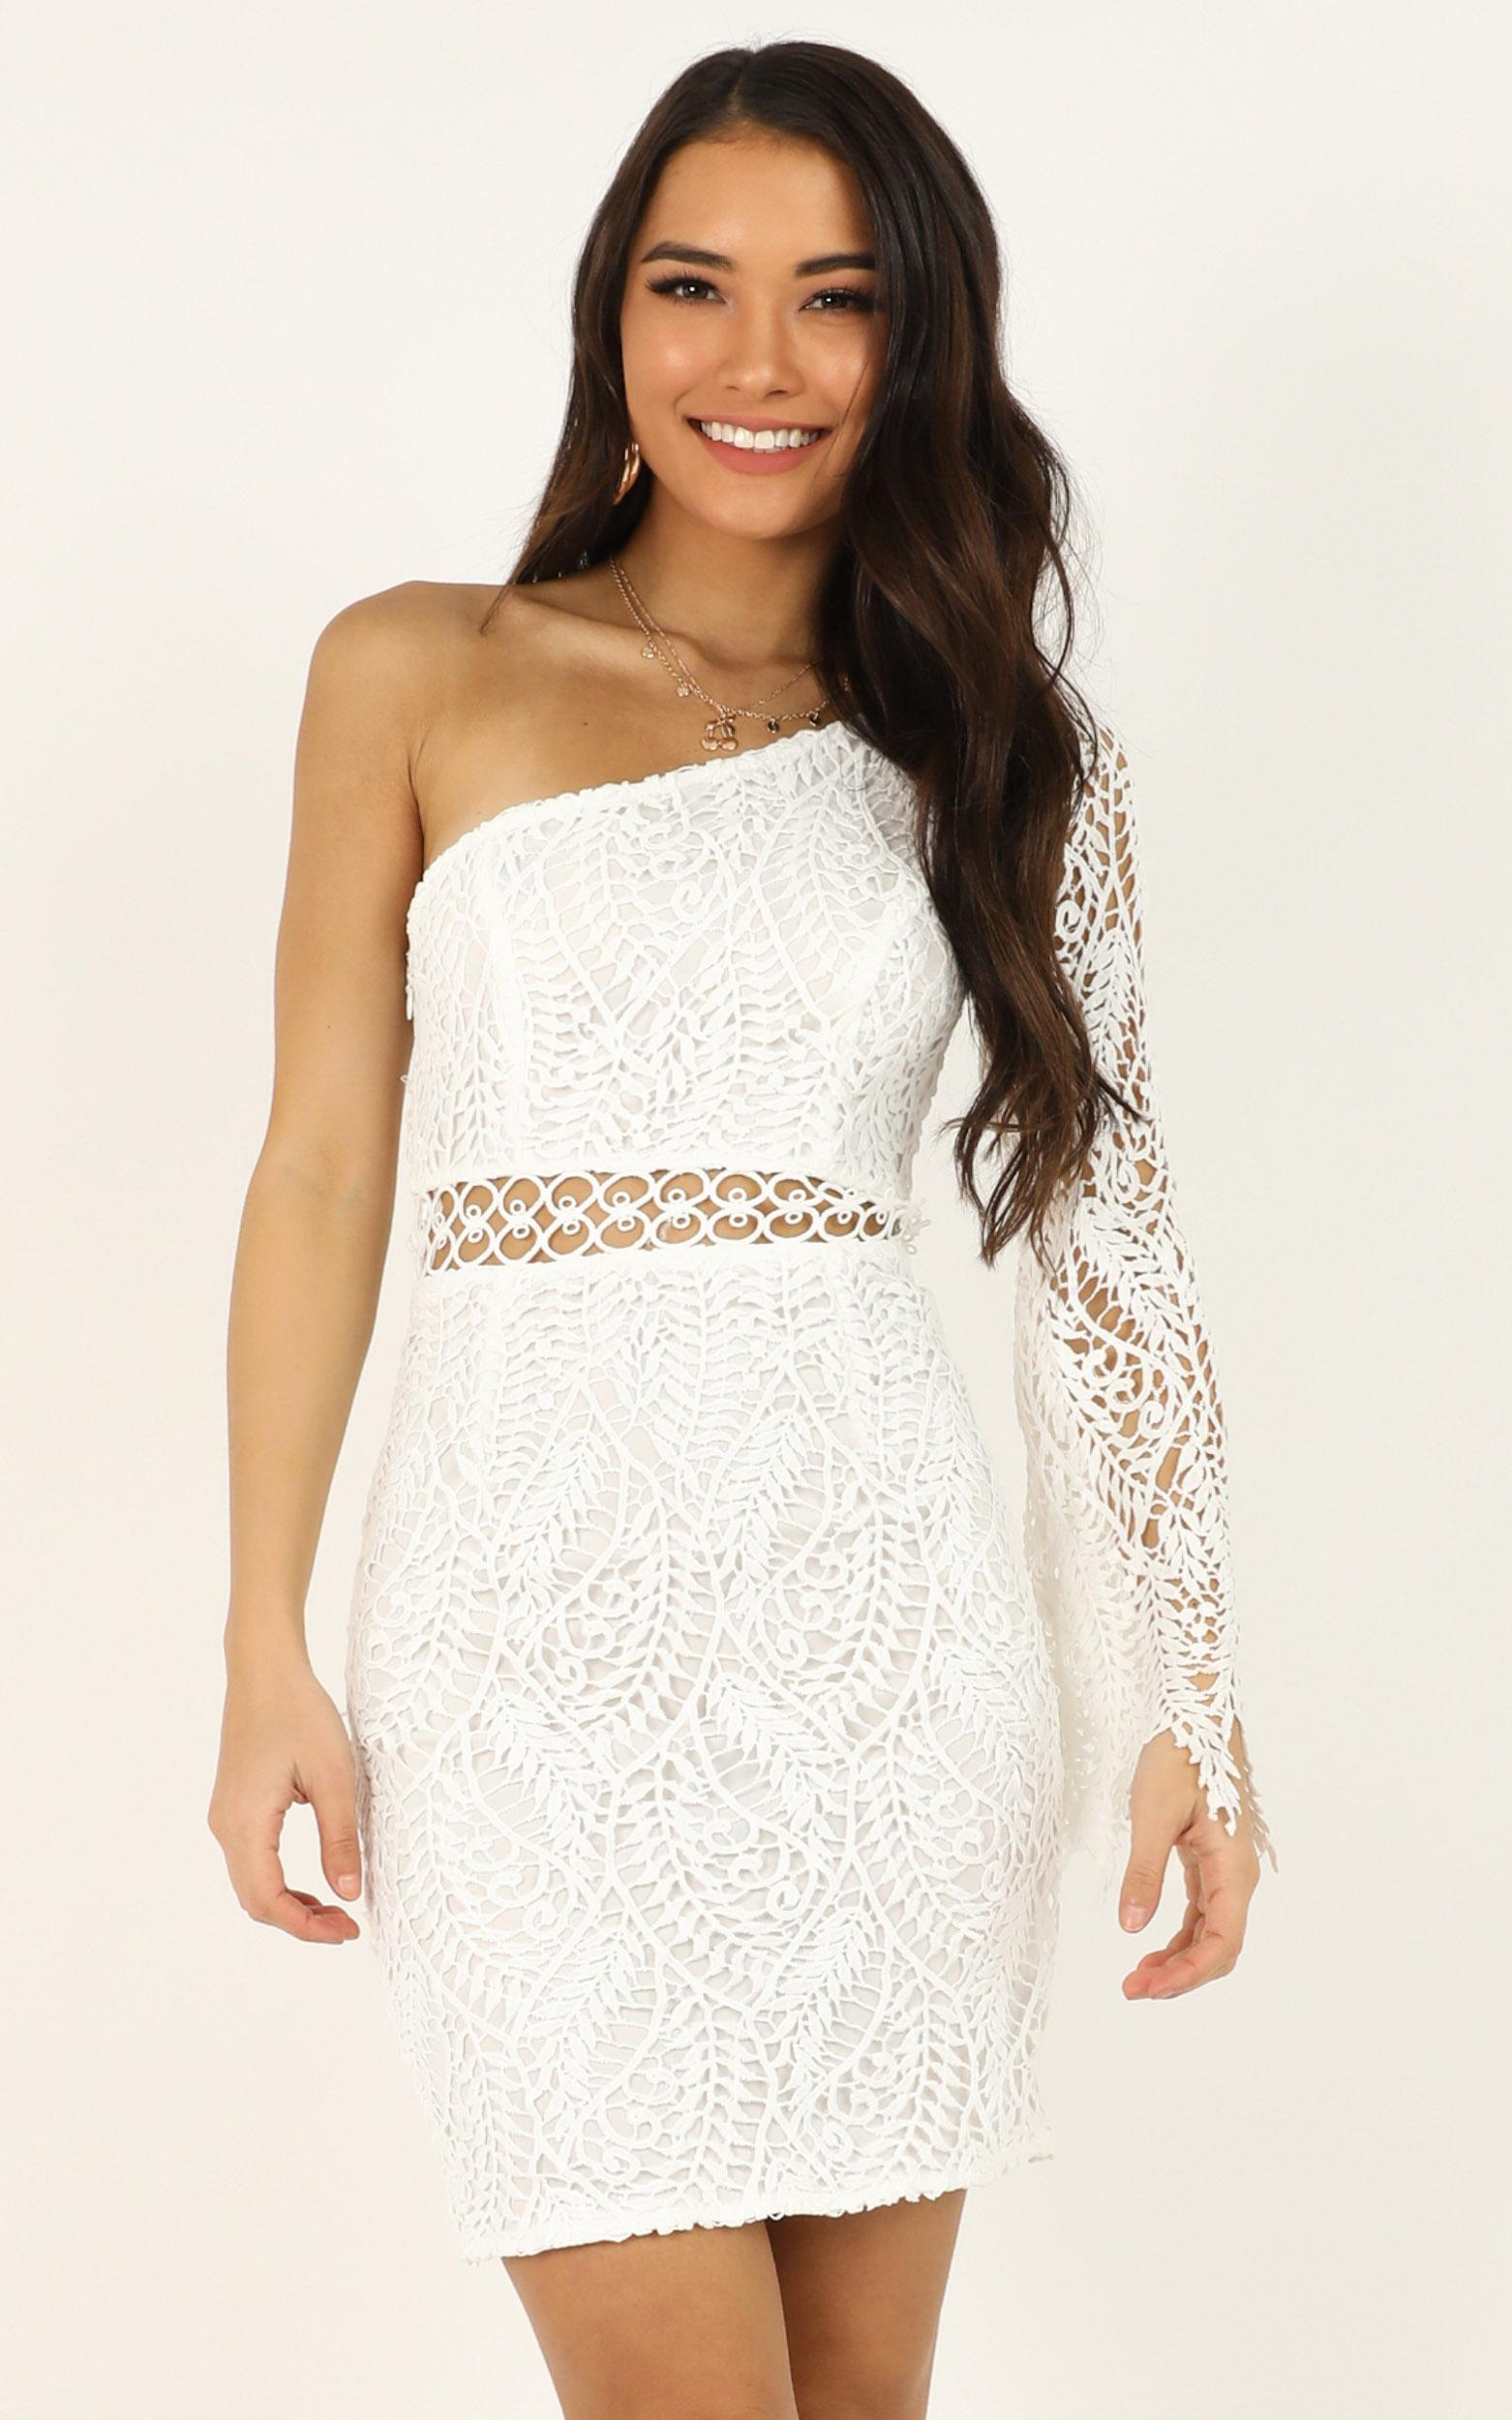 Wonderful Life dress in white lace - 12 (L), White, hi-res image number null